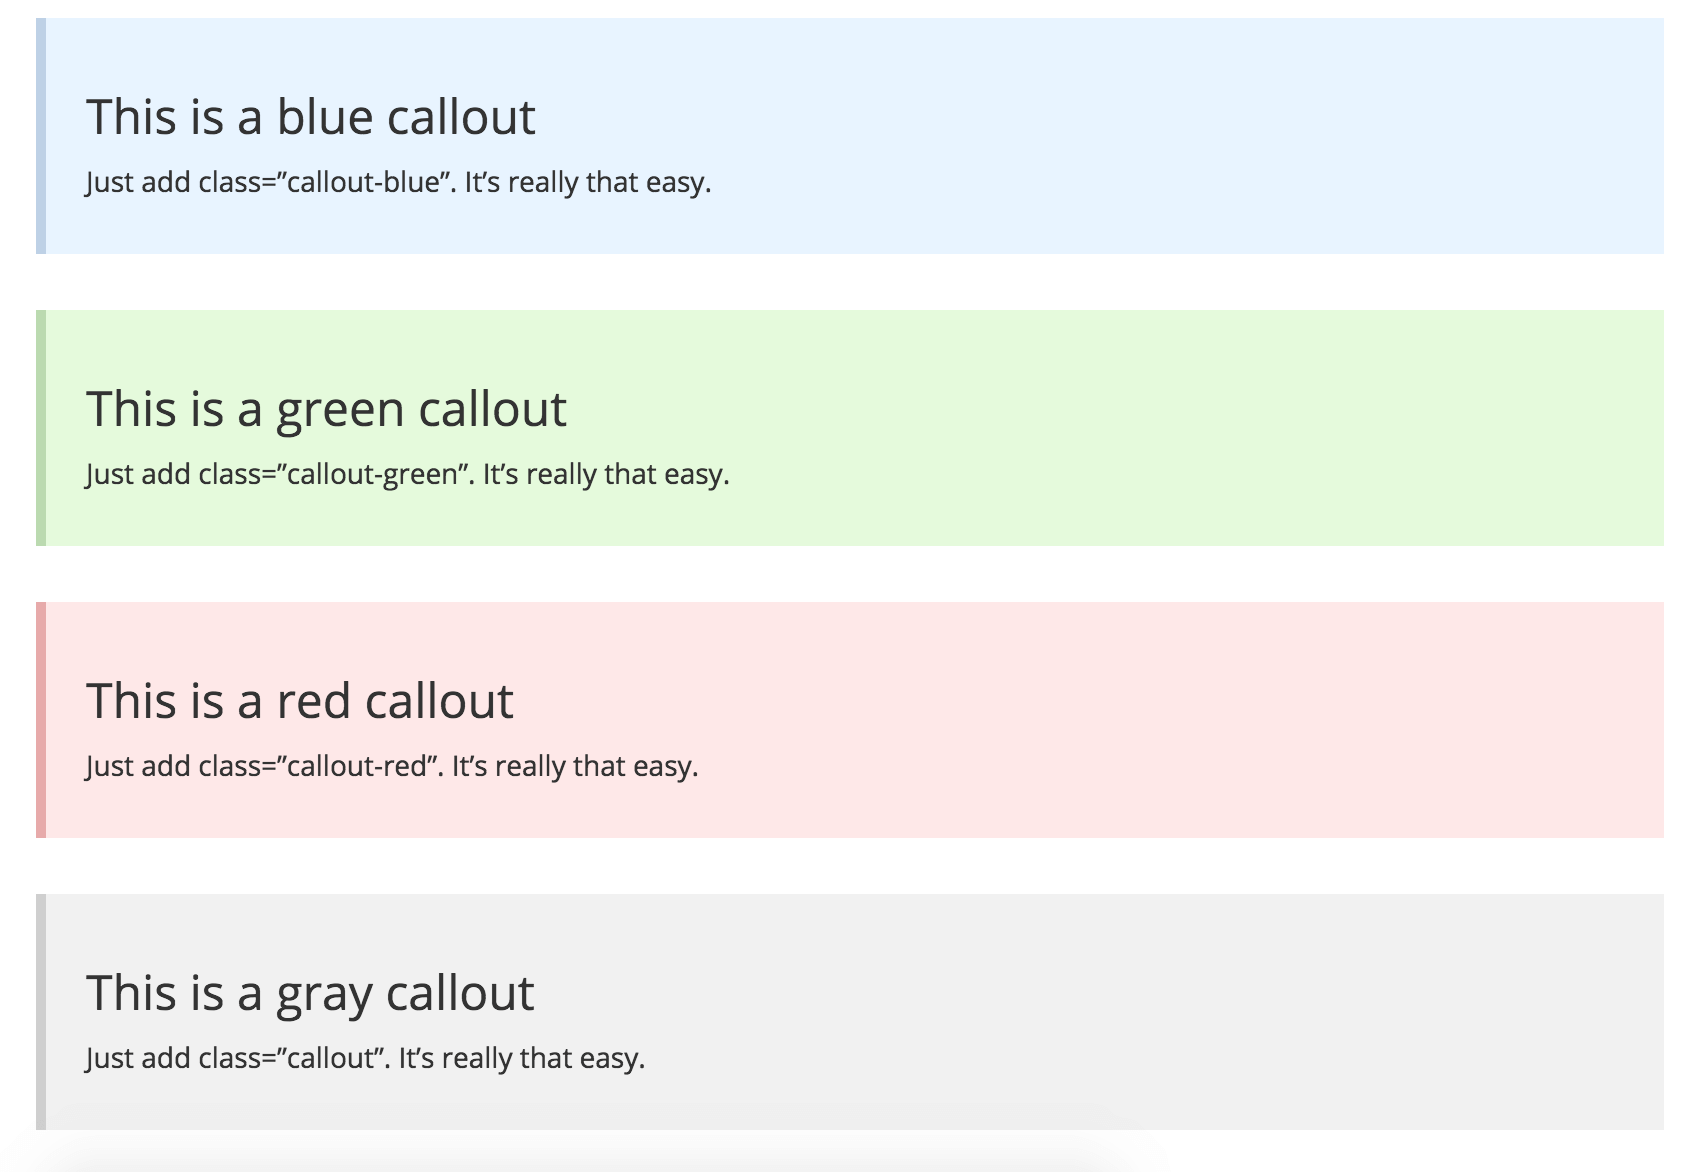 wedocs-callout-styles